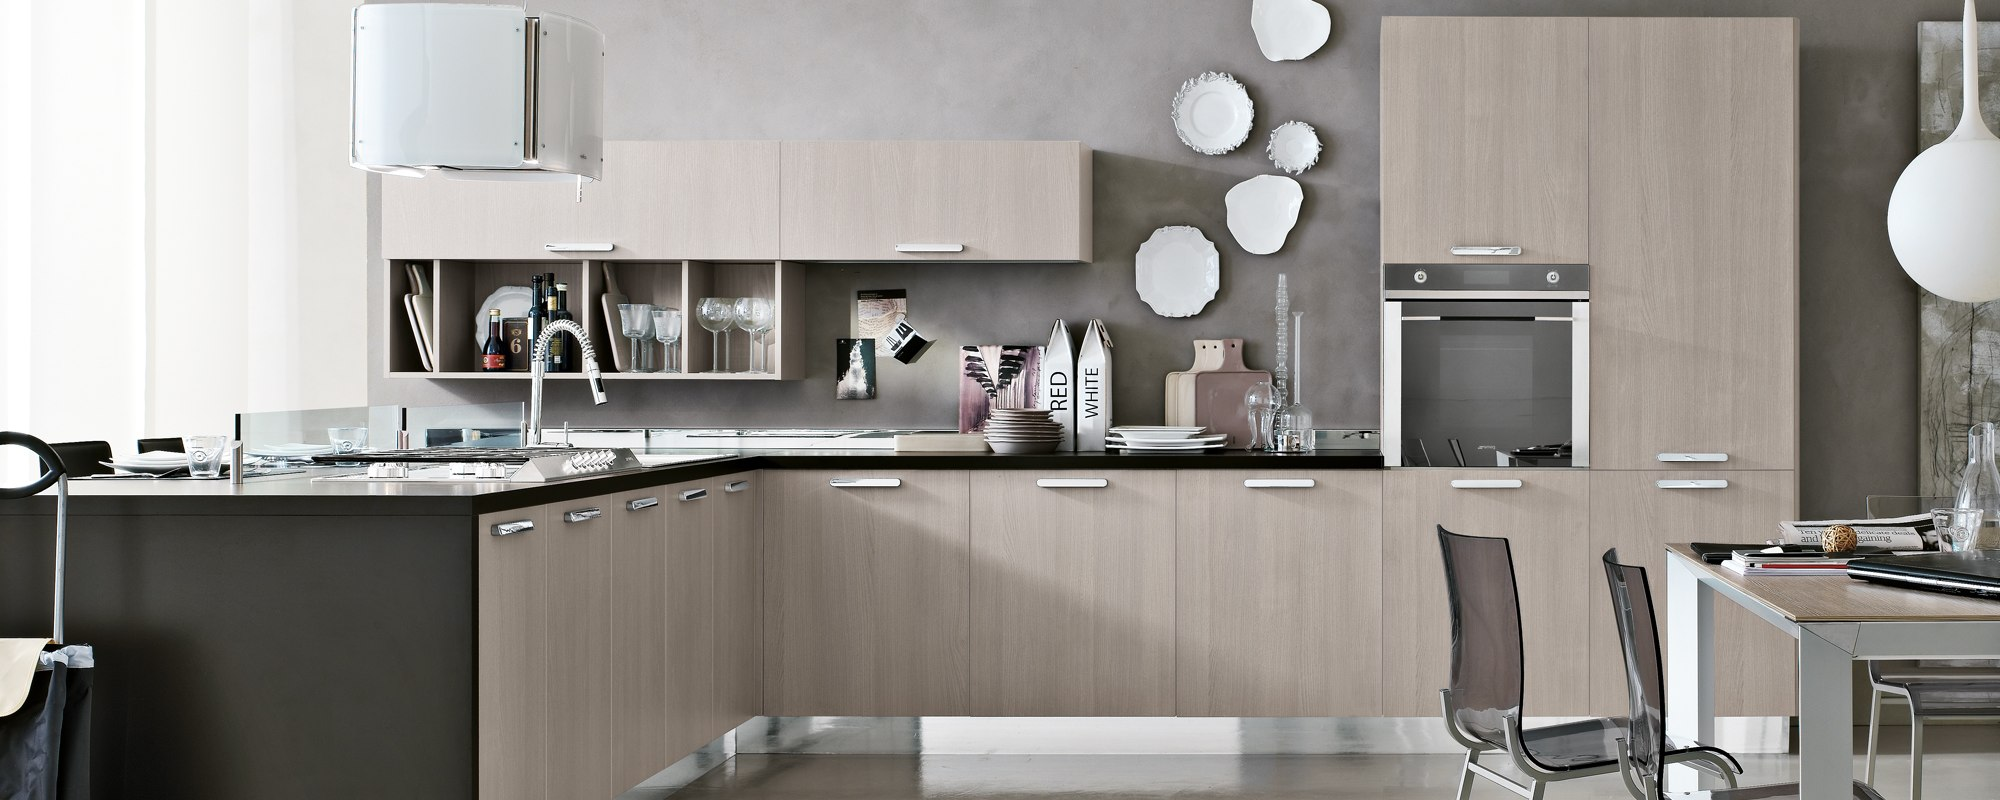 Milly cucine stosa - Cucine stosa milly ...